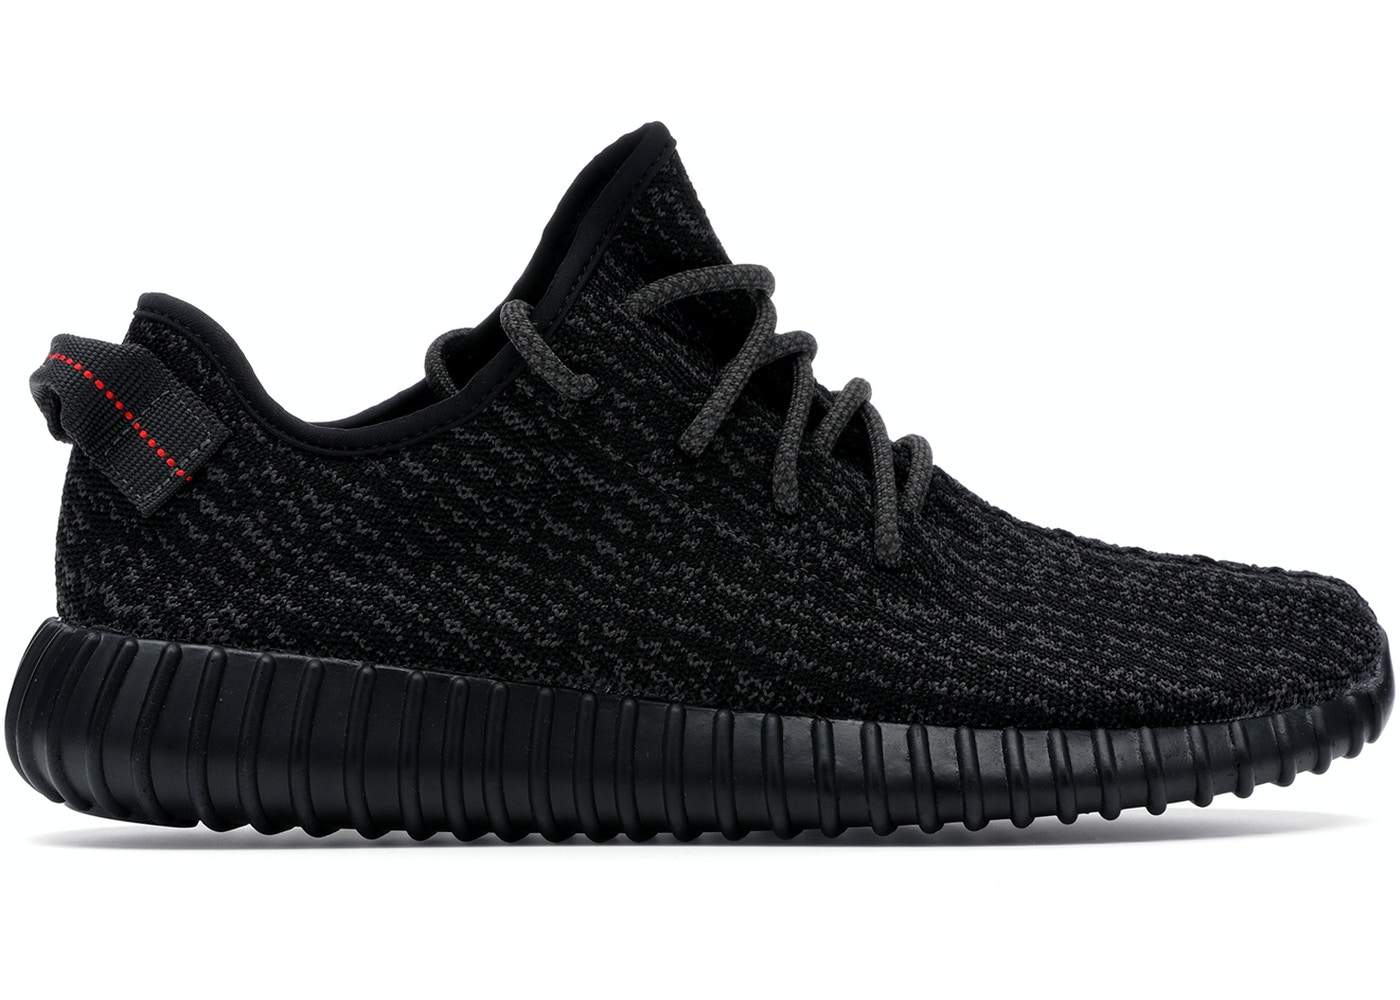 sports shoes 2bbec c4c70 adidas Yeezy Boost 350 Pirate Black (2016) - BB5350